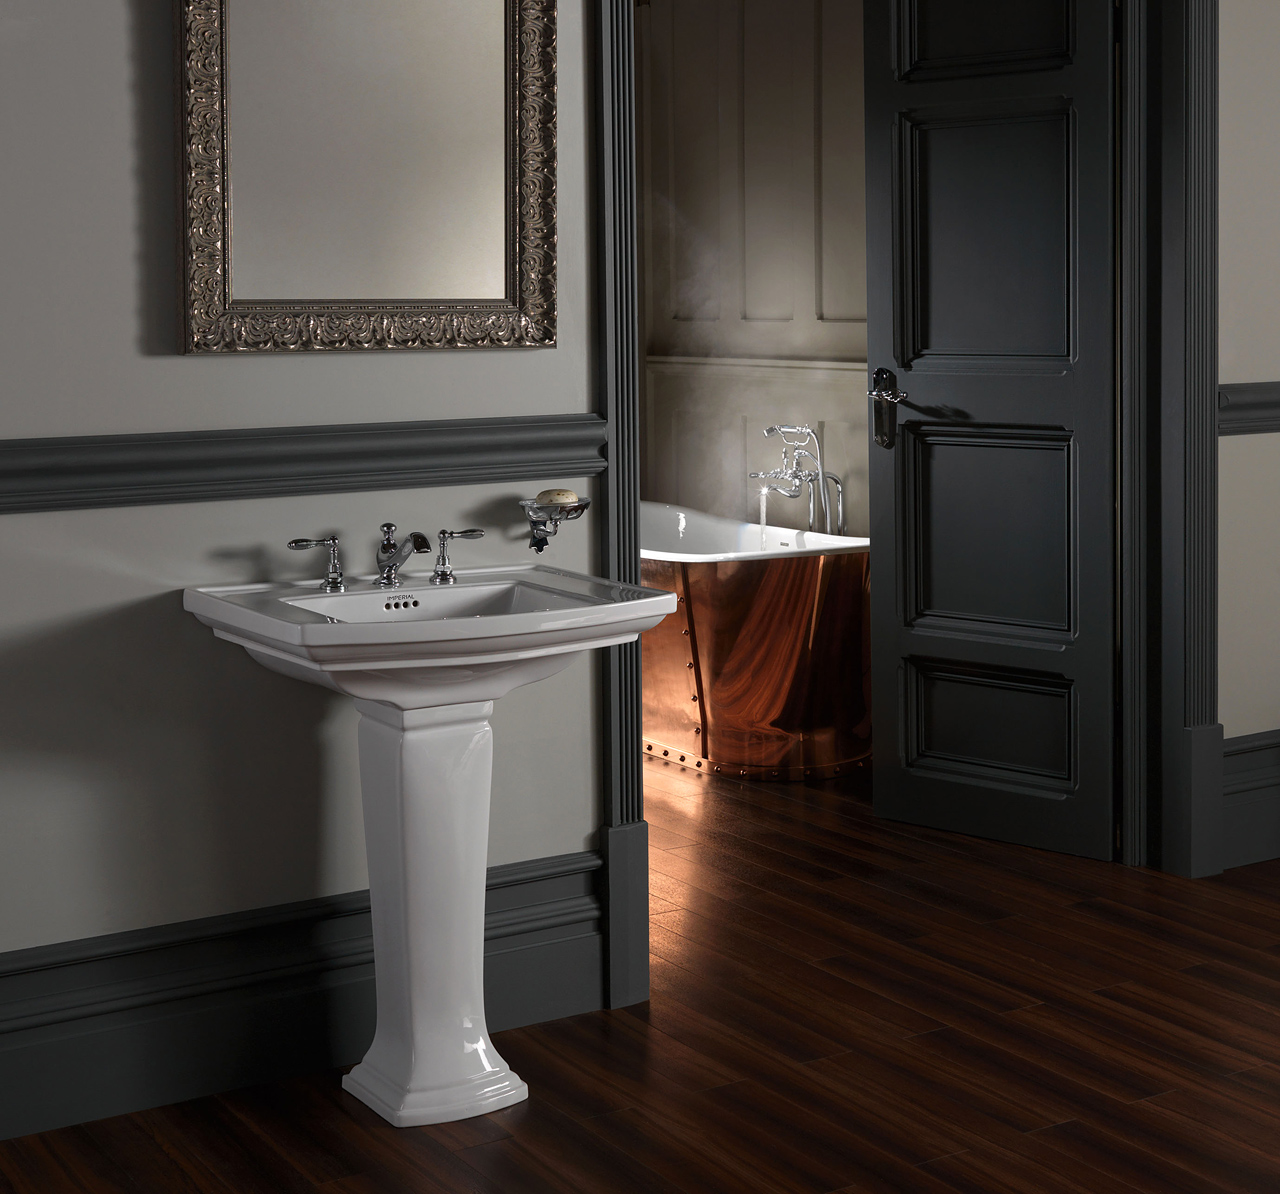 Classic Bathrooms: Imperial Bathrooms - Wellbrook+Steam-Amend